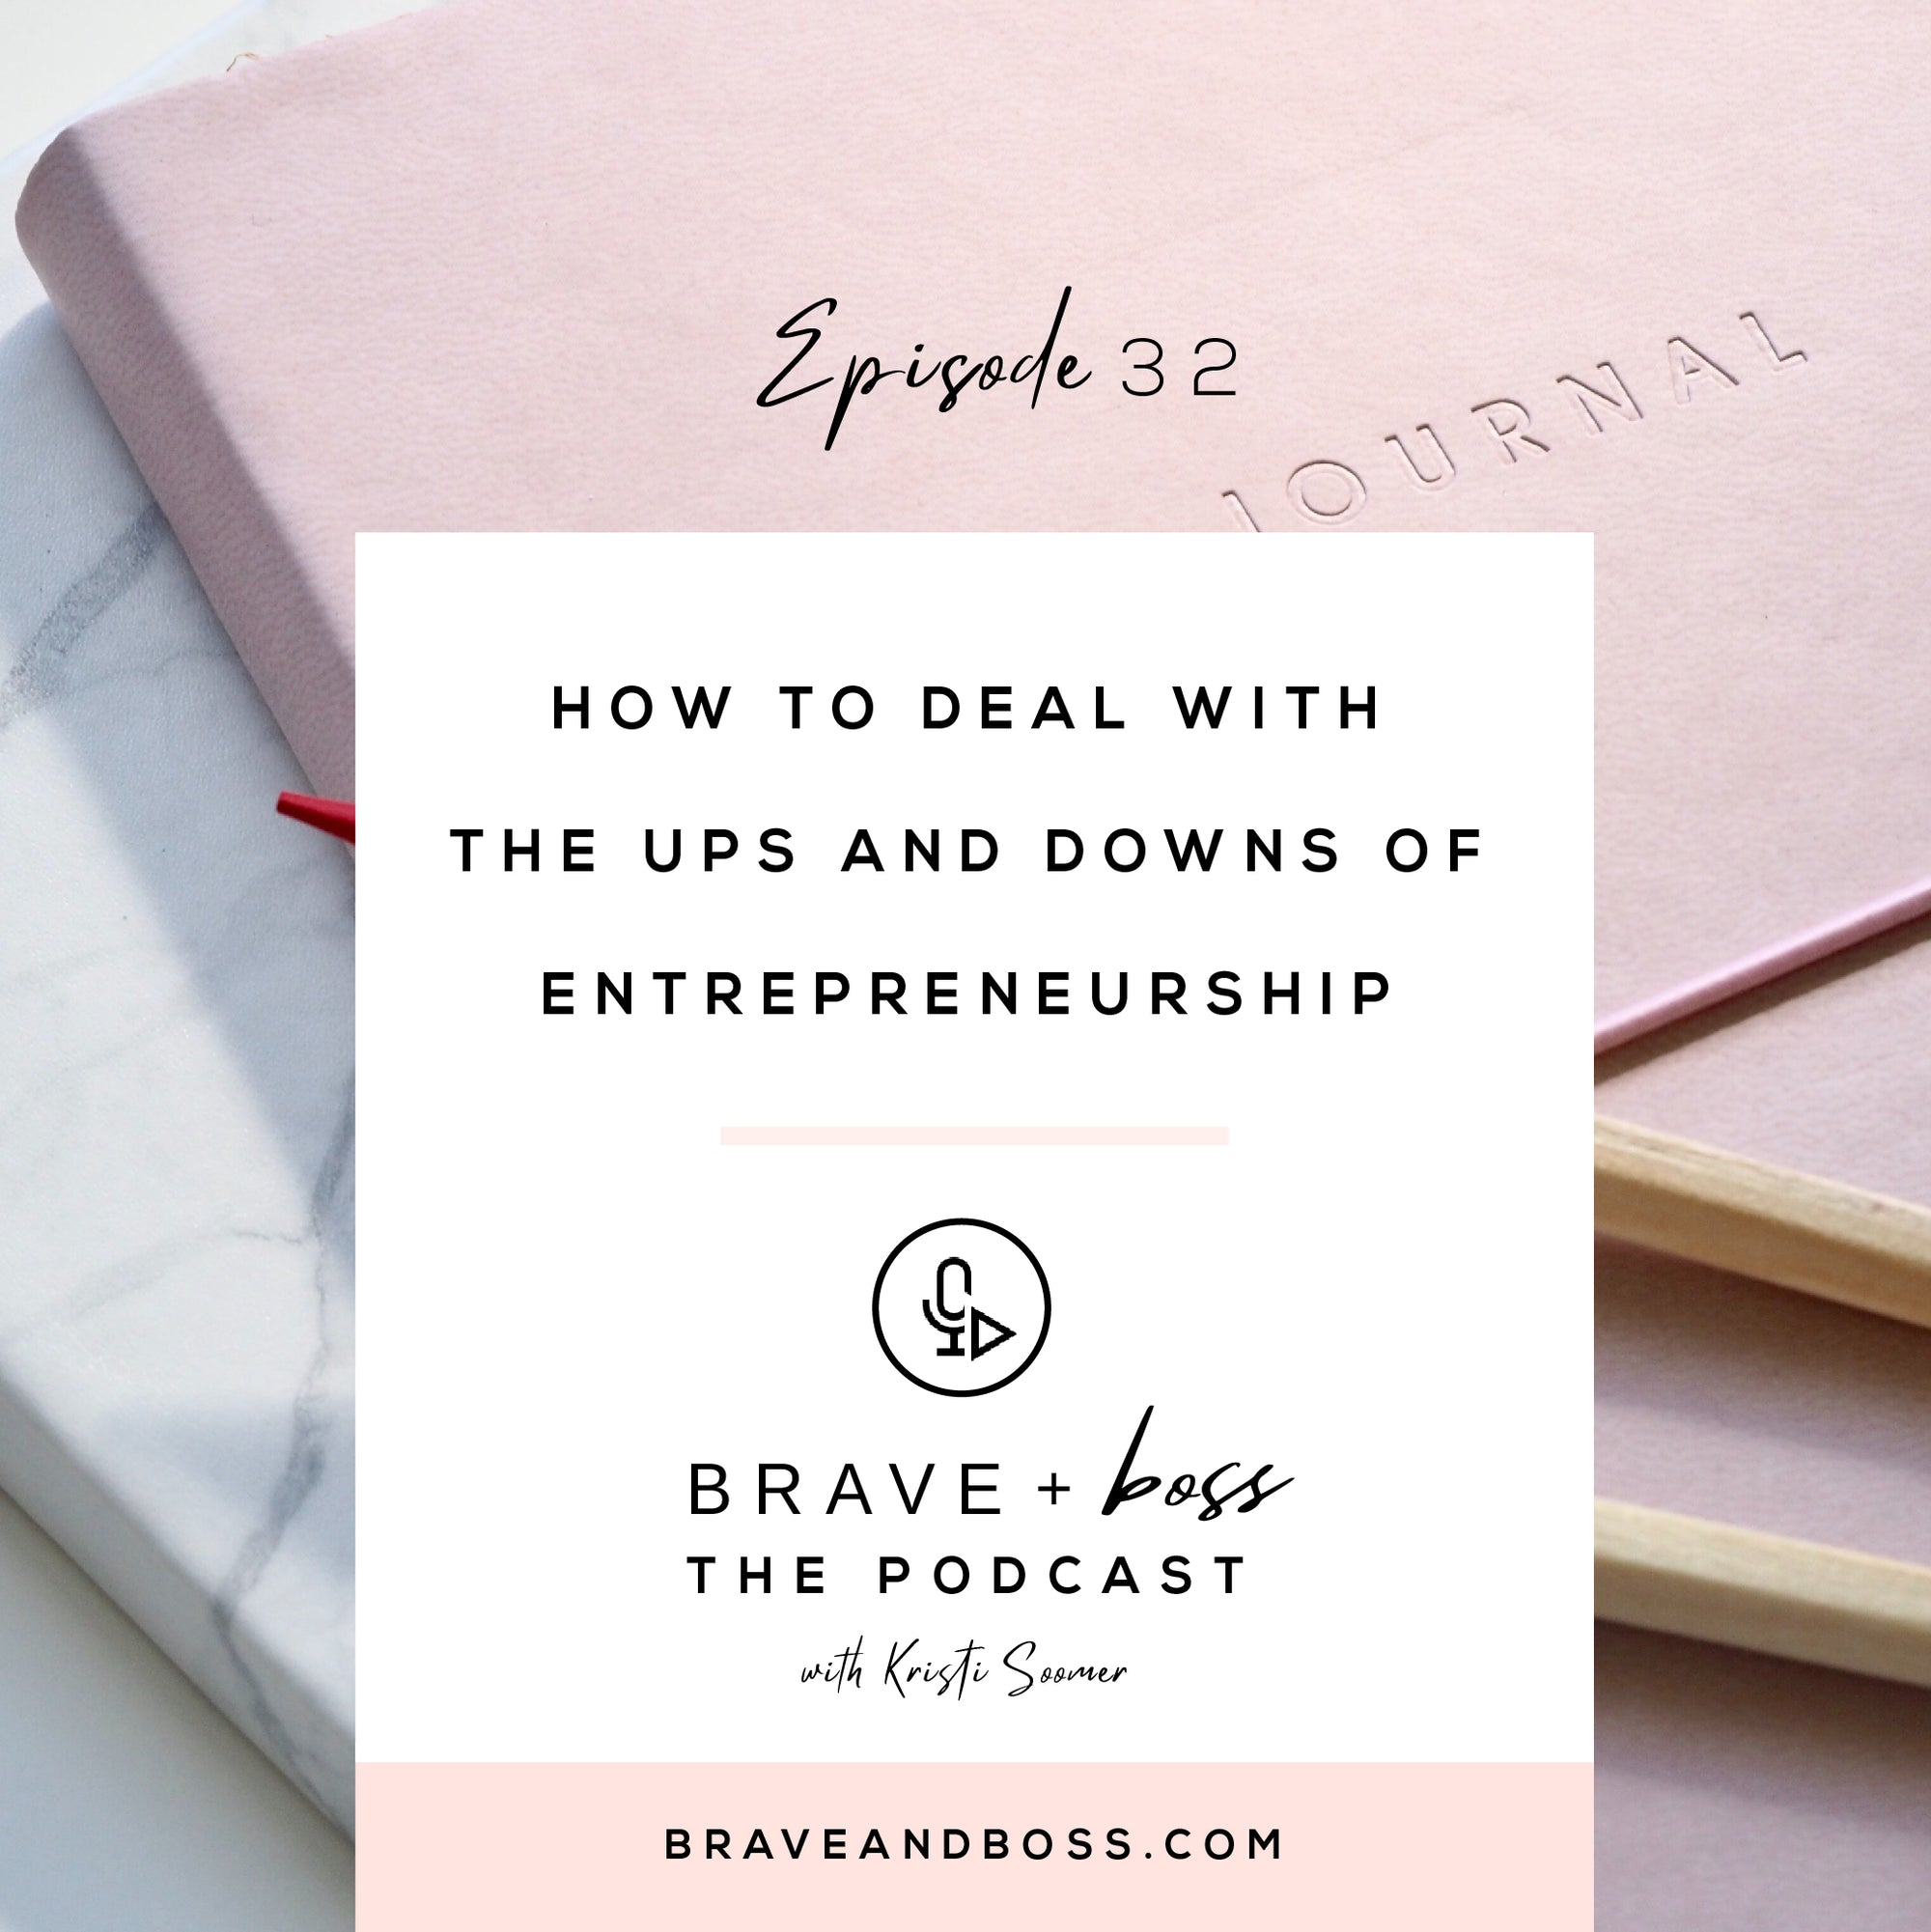 How to Deal with the Ups and Downs of Entrepreneurship